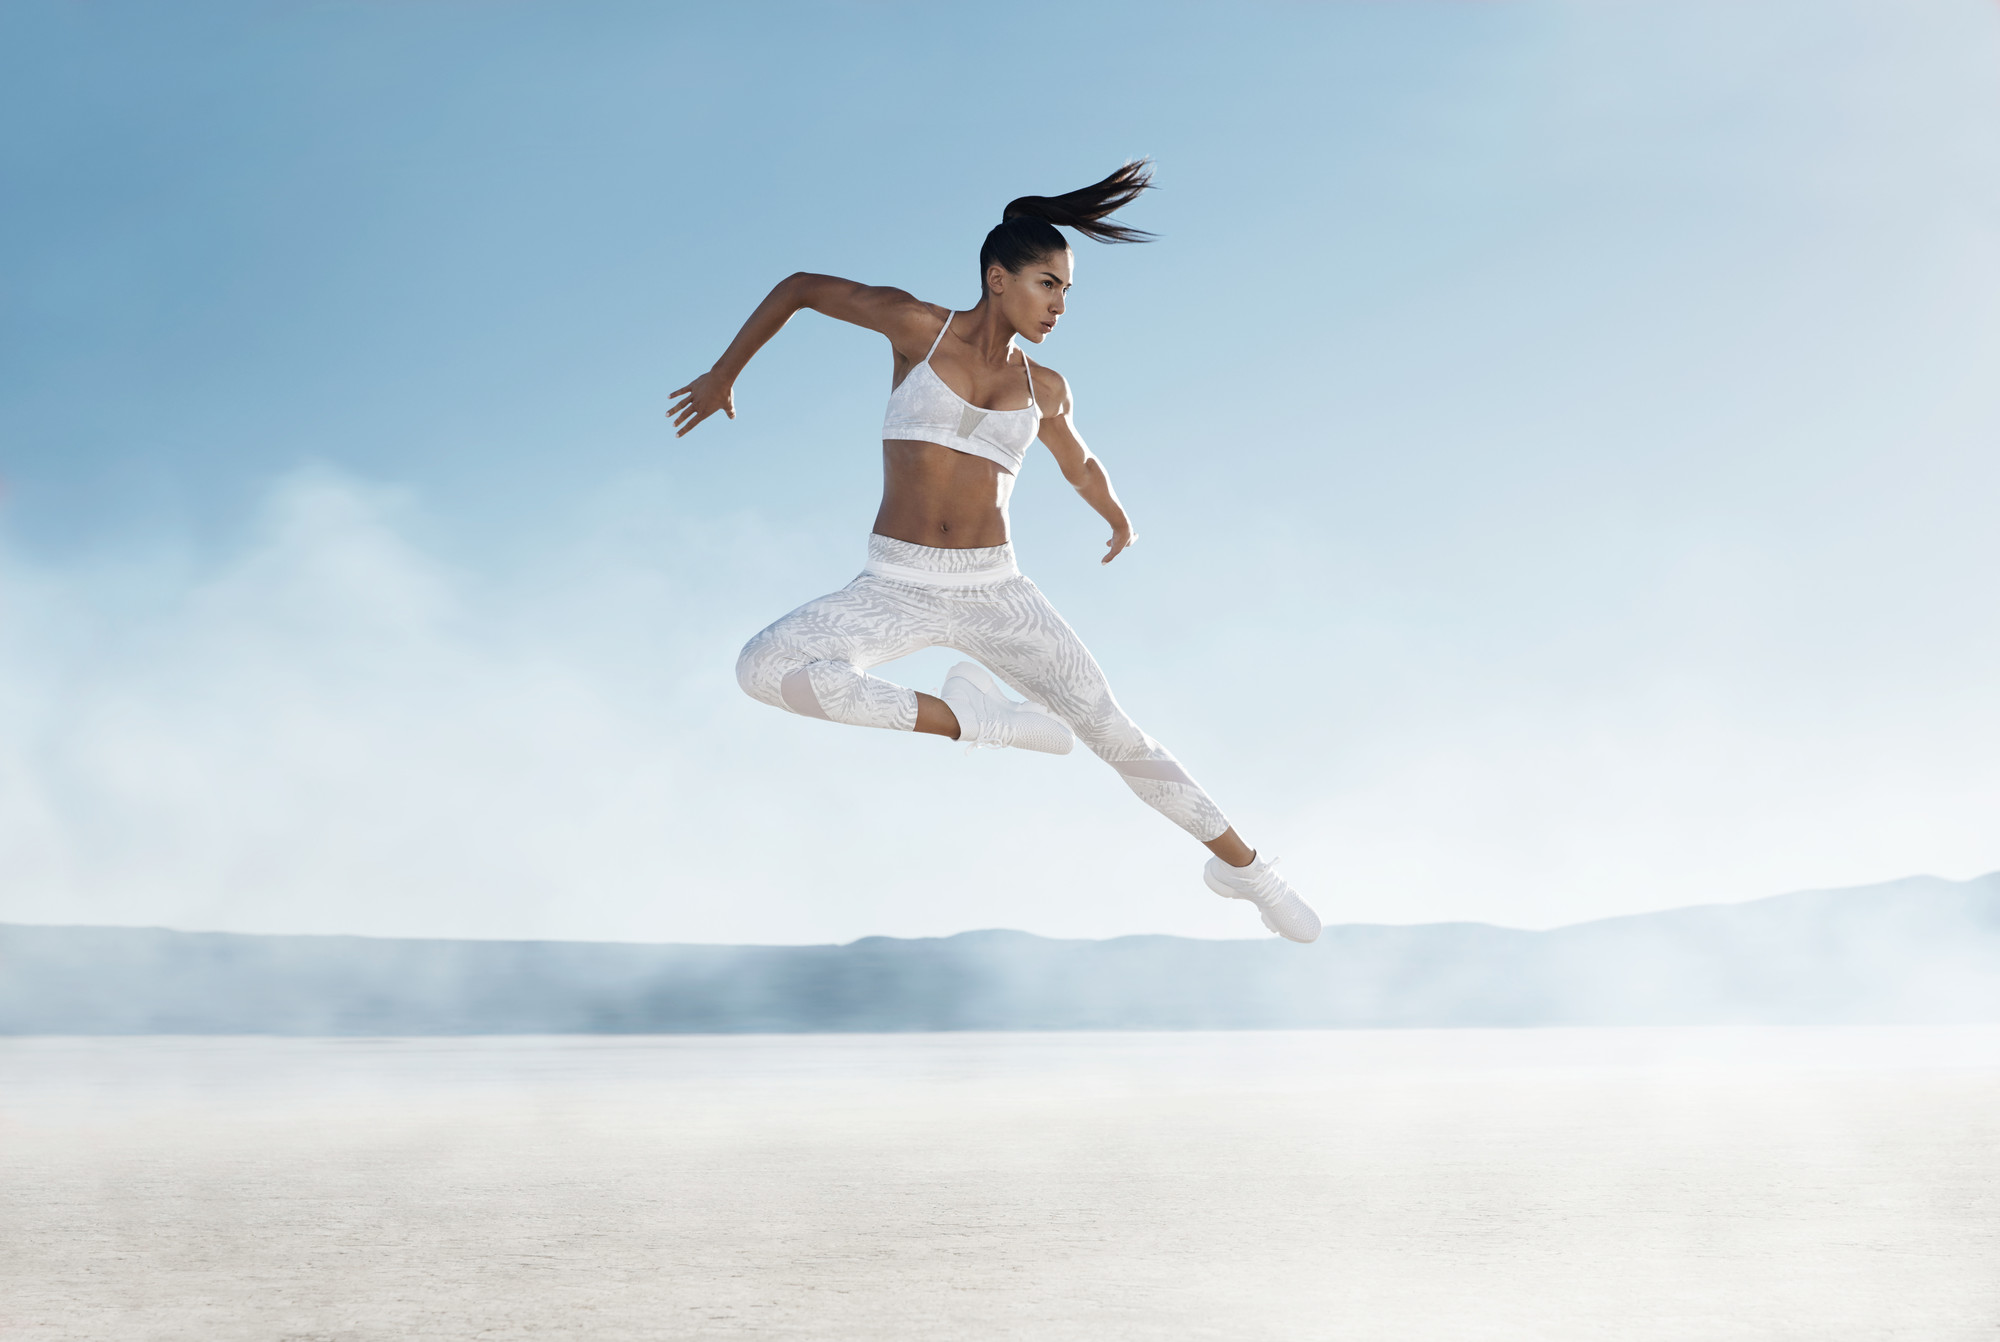 girl jumping in air in desert in workout gear